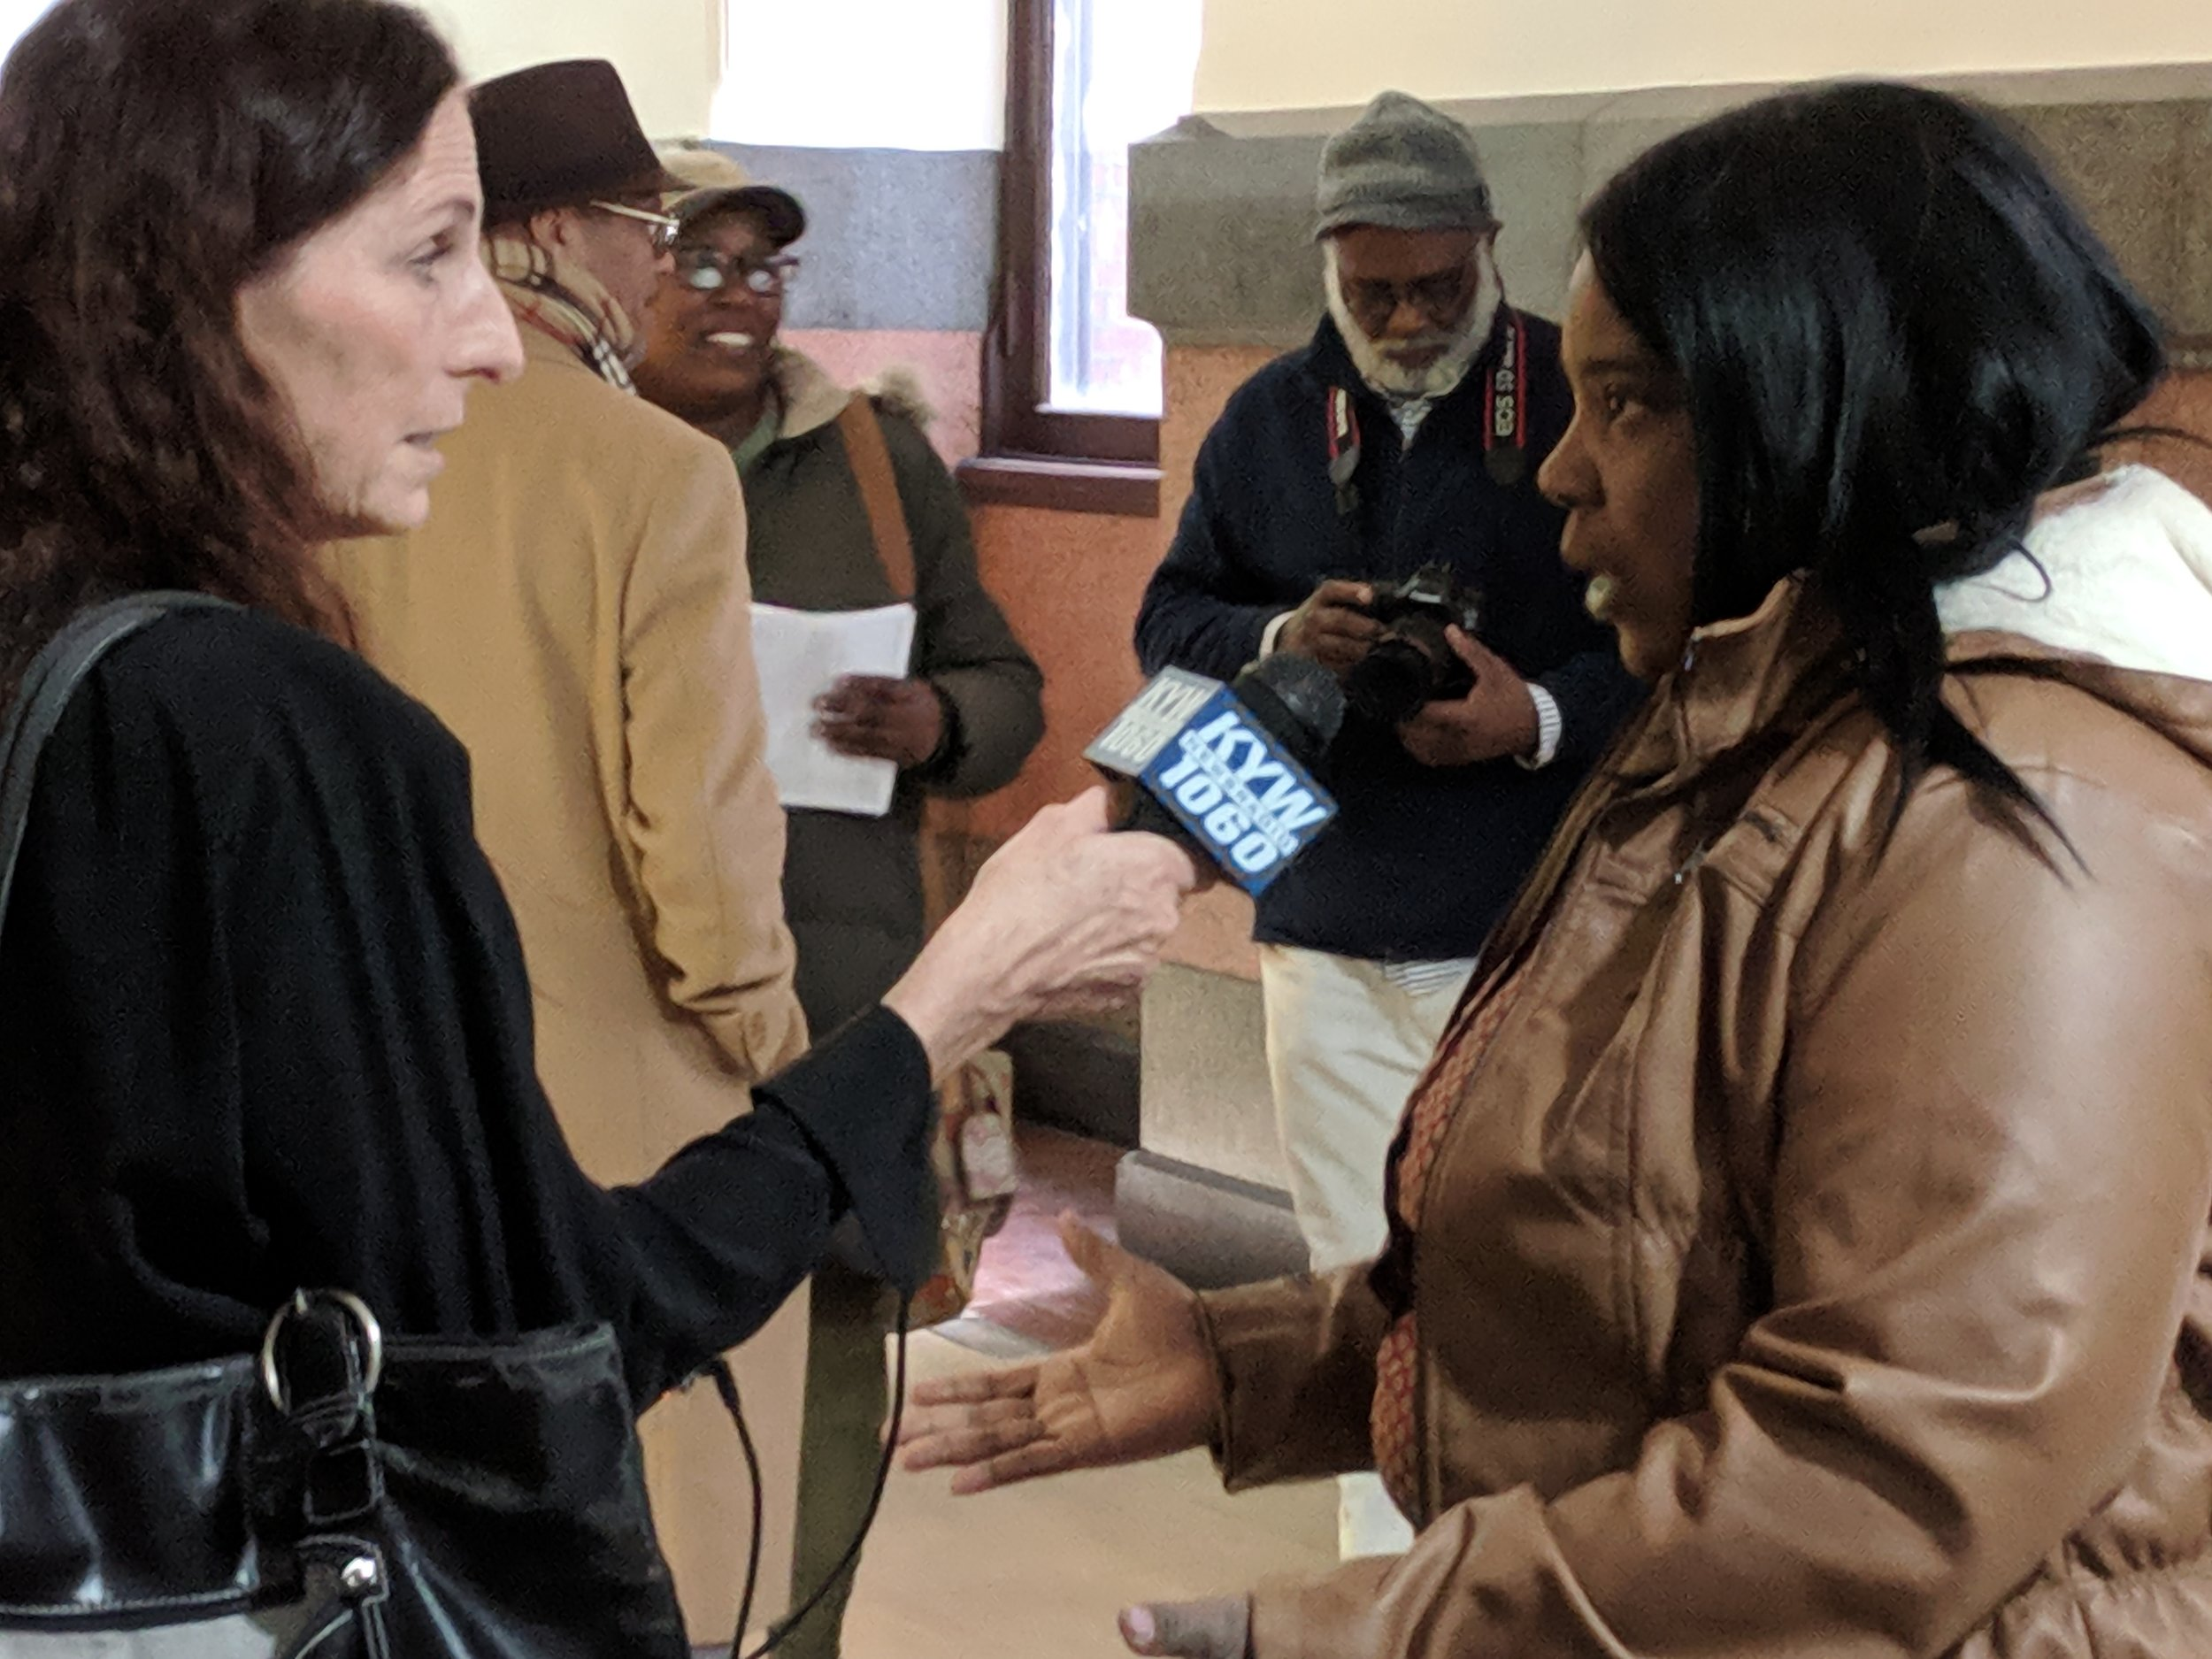 Pat Loeb of KYW News Radio 1060 interviews Carla Cain after Carla filed her petitions for City Commissioner. Read and listen      here     .